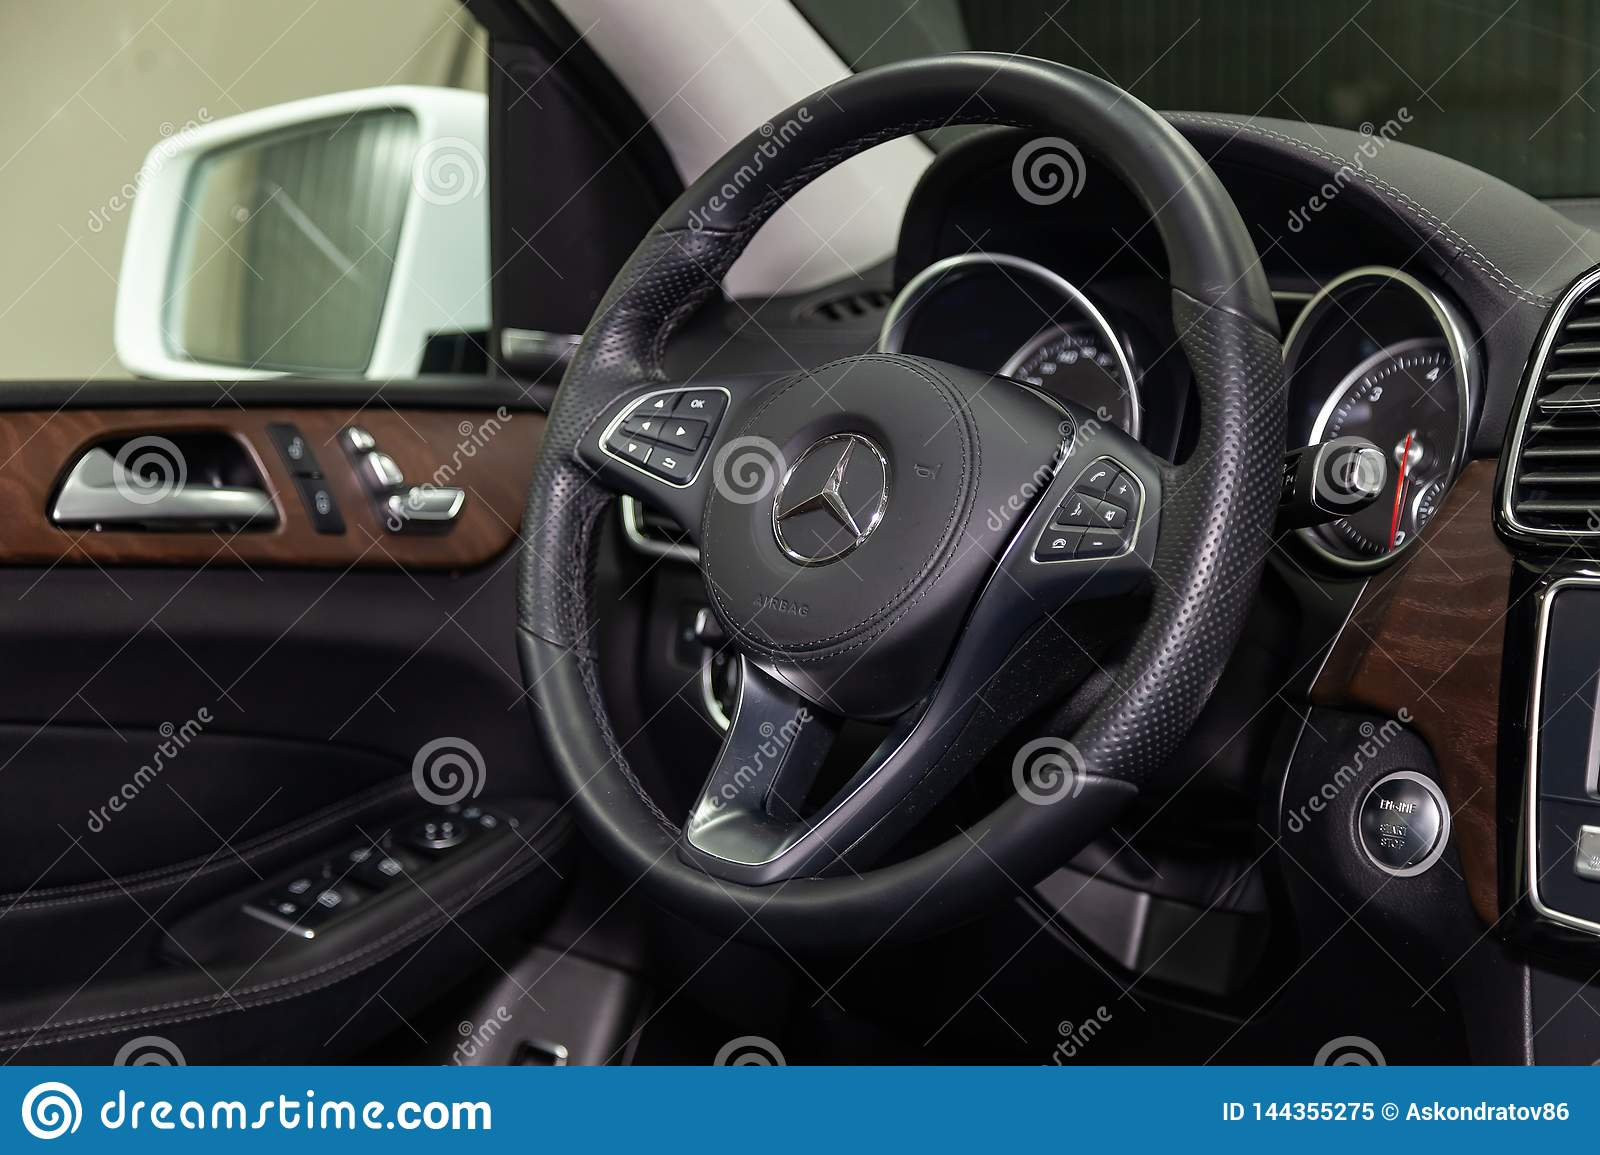 Mercedes Box Suv >> Interior View With Steering Wheel And Dashboard Of Luxury